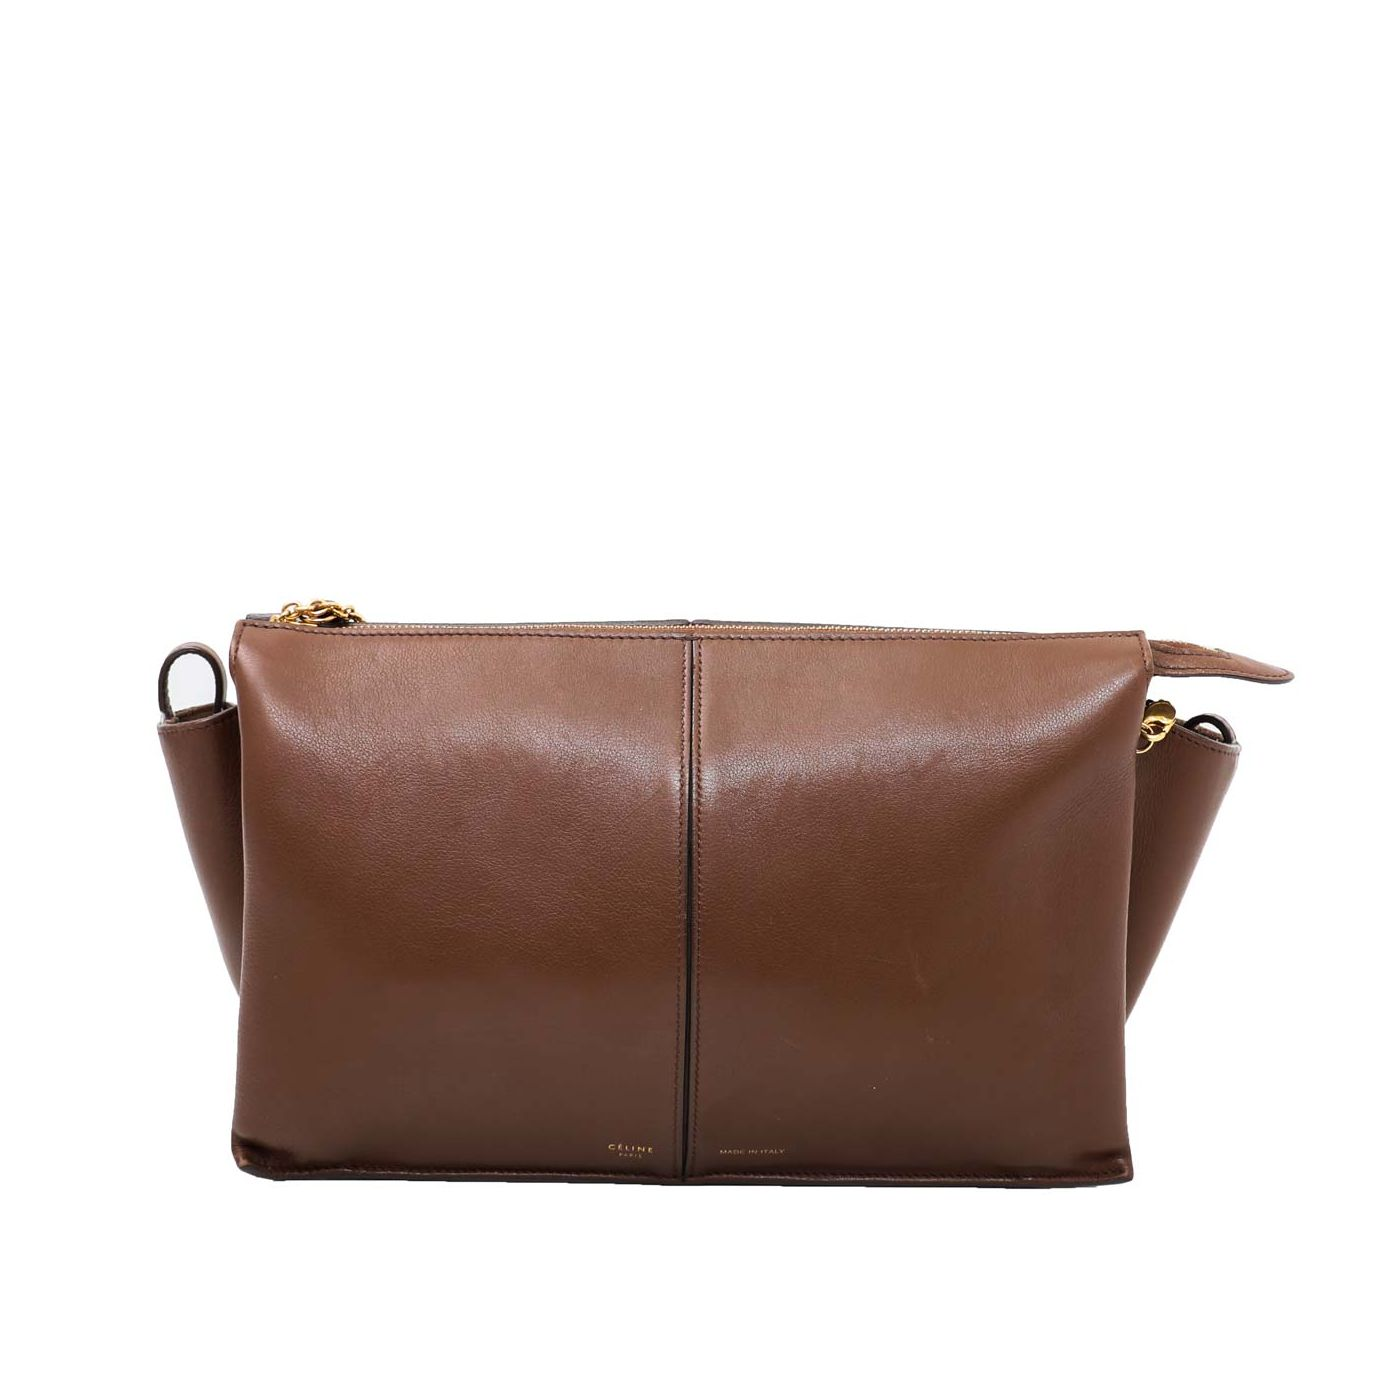 Celine Brown Trifold Chain Clutch